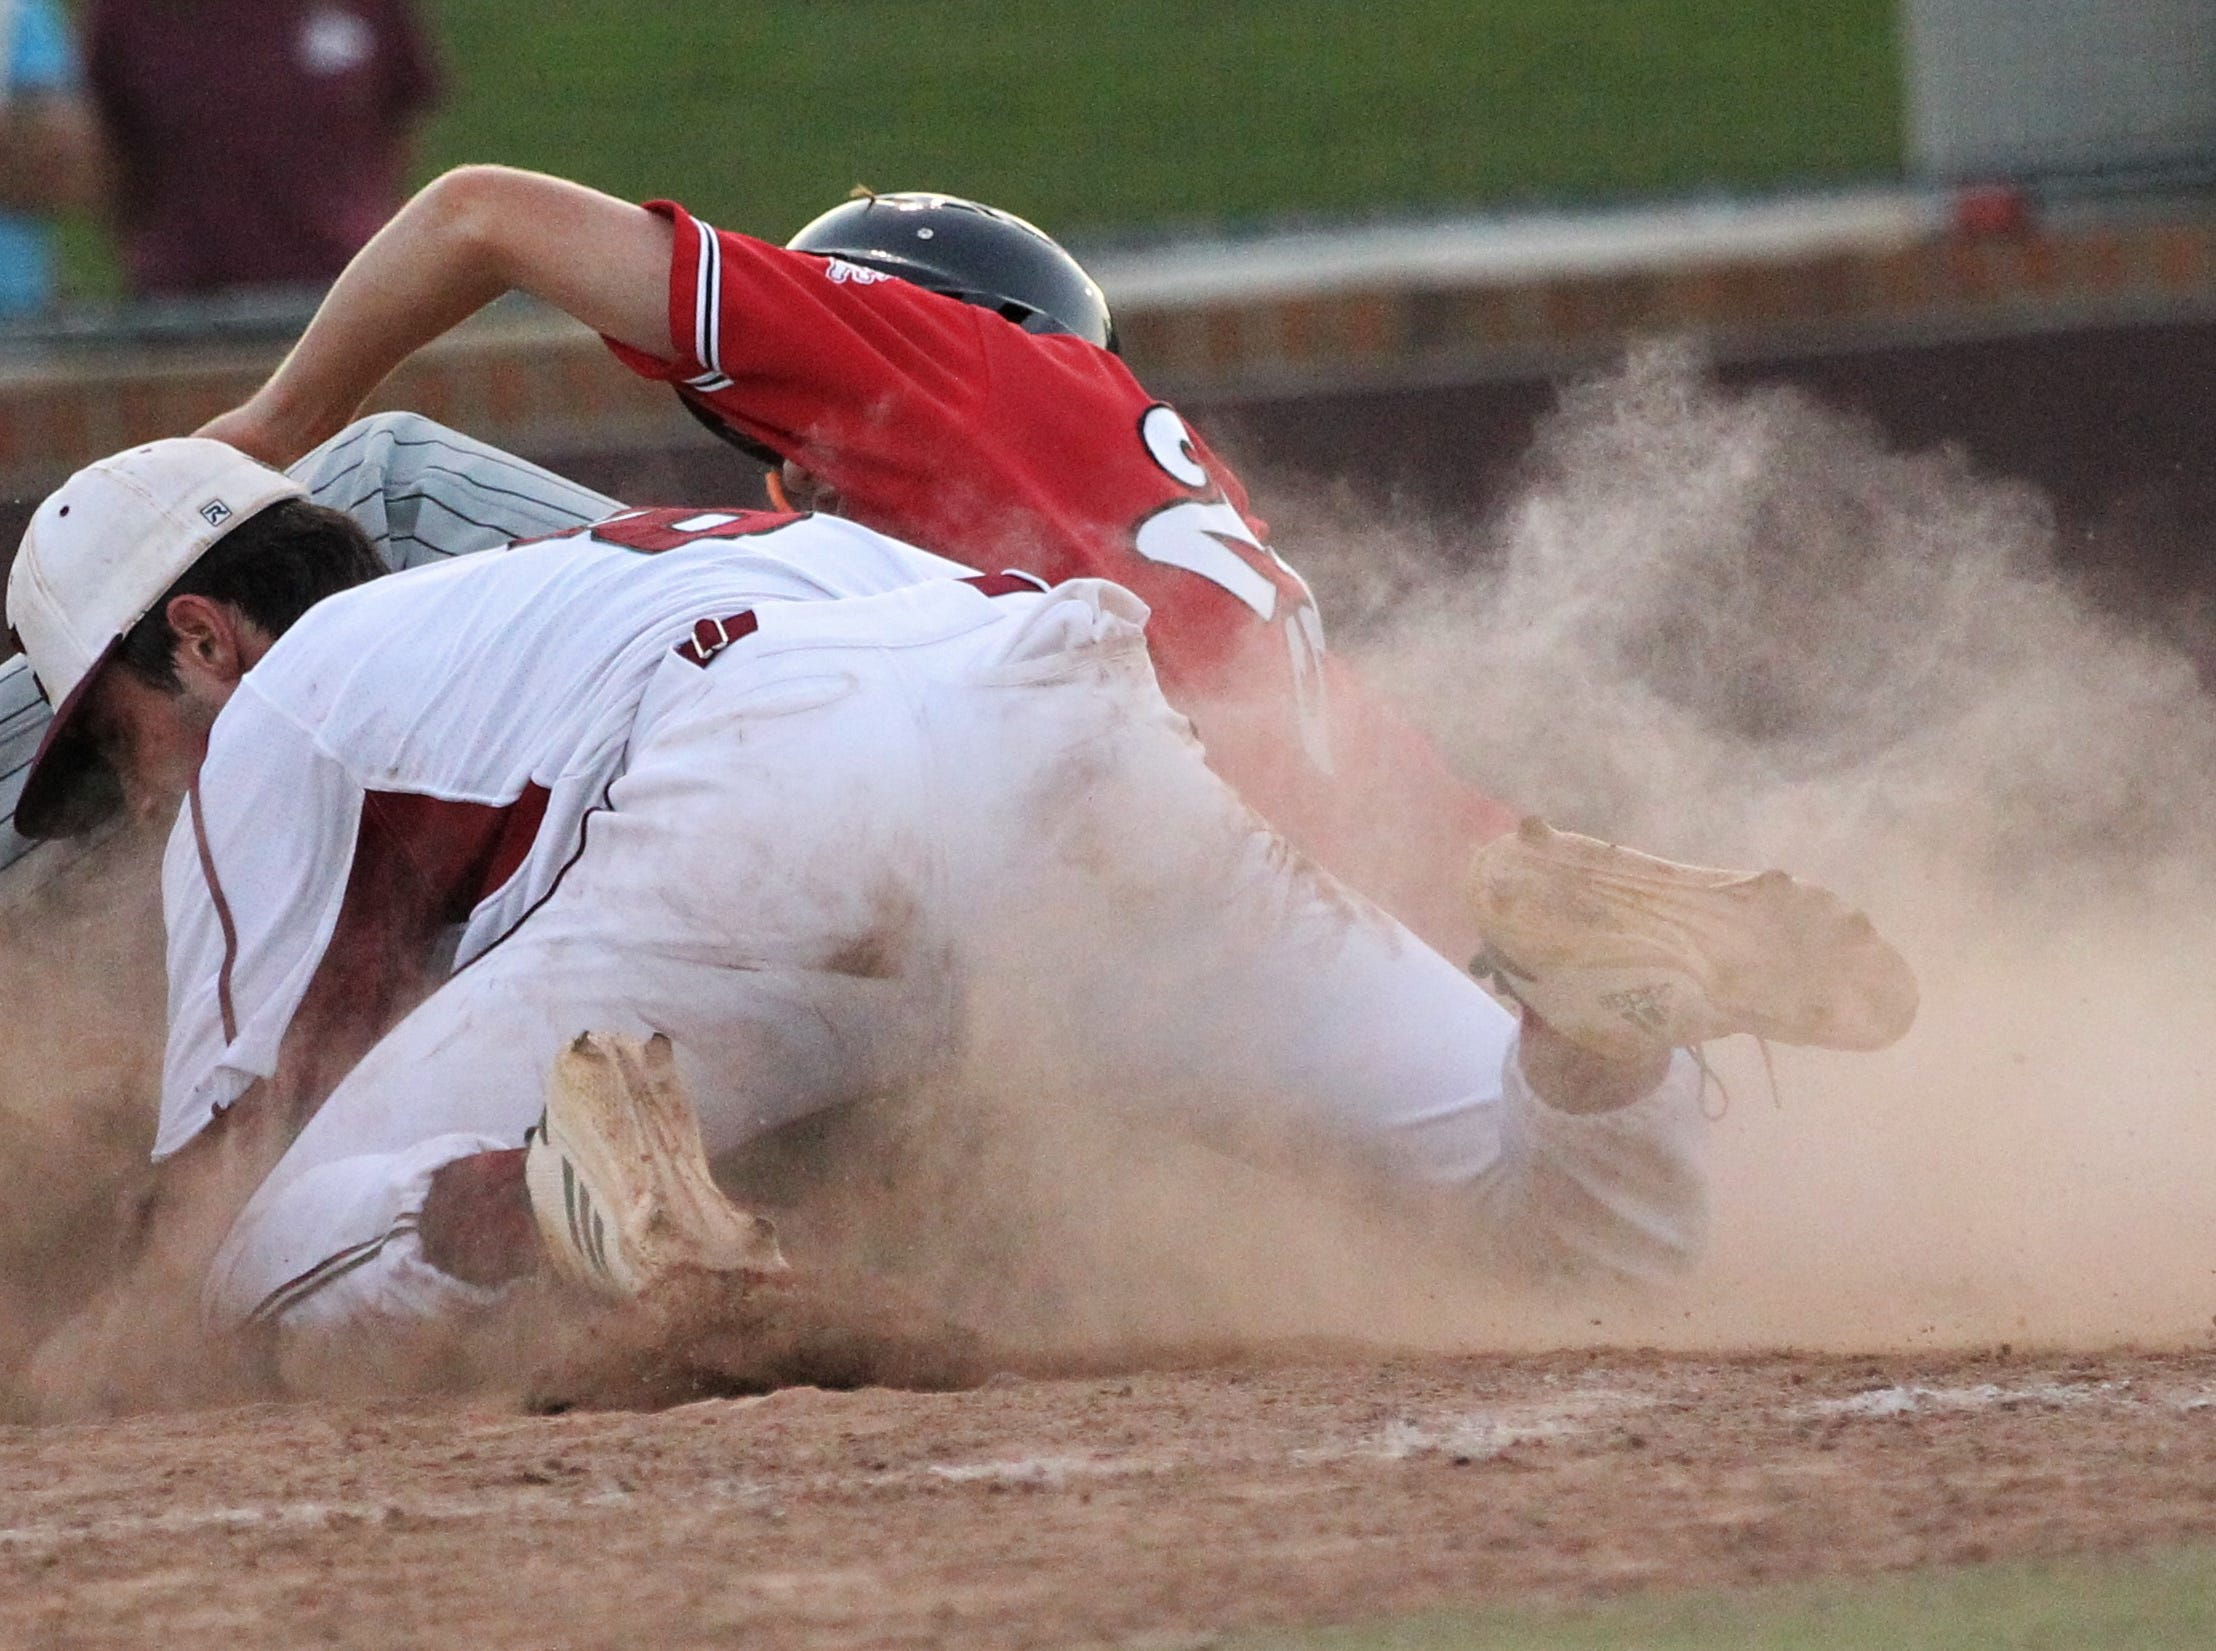 Leon junior Matt Williams slides for home after a passed ball but gets tagged out as Chiles beat Leon 10-6 during a District 2-8A semifinal on May 7, 2019.